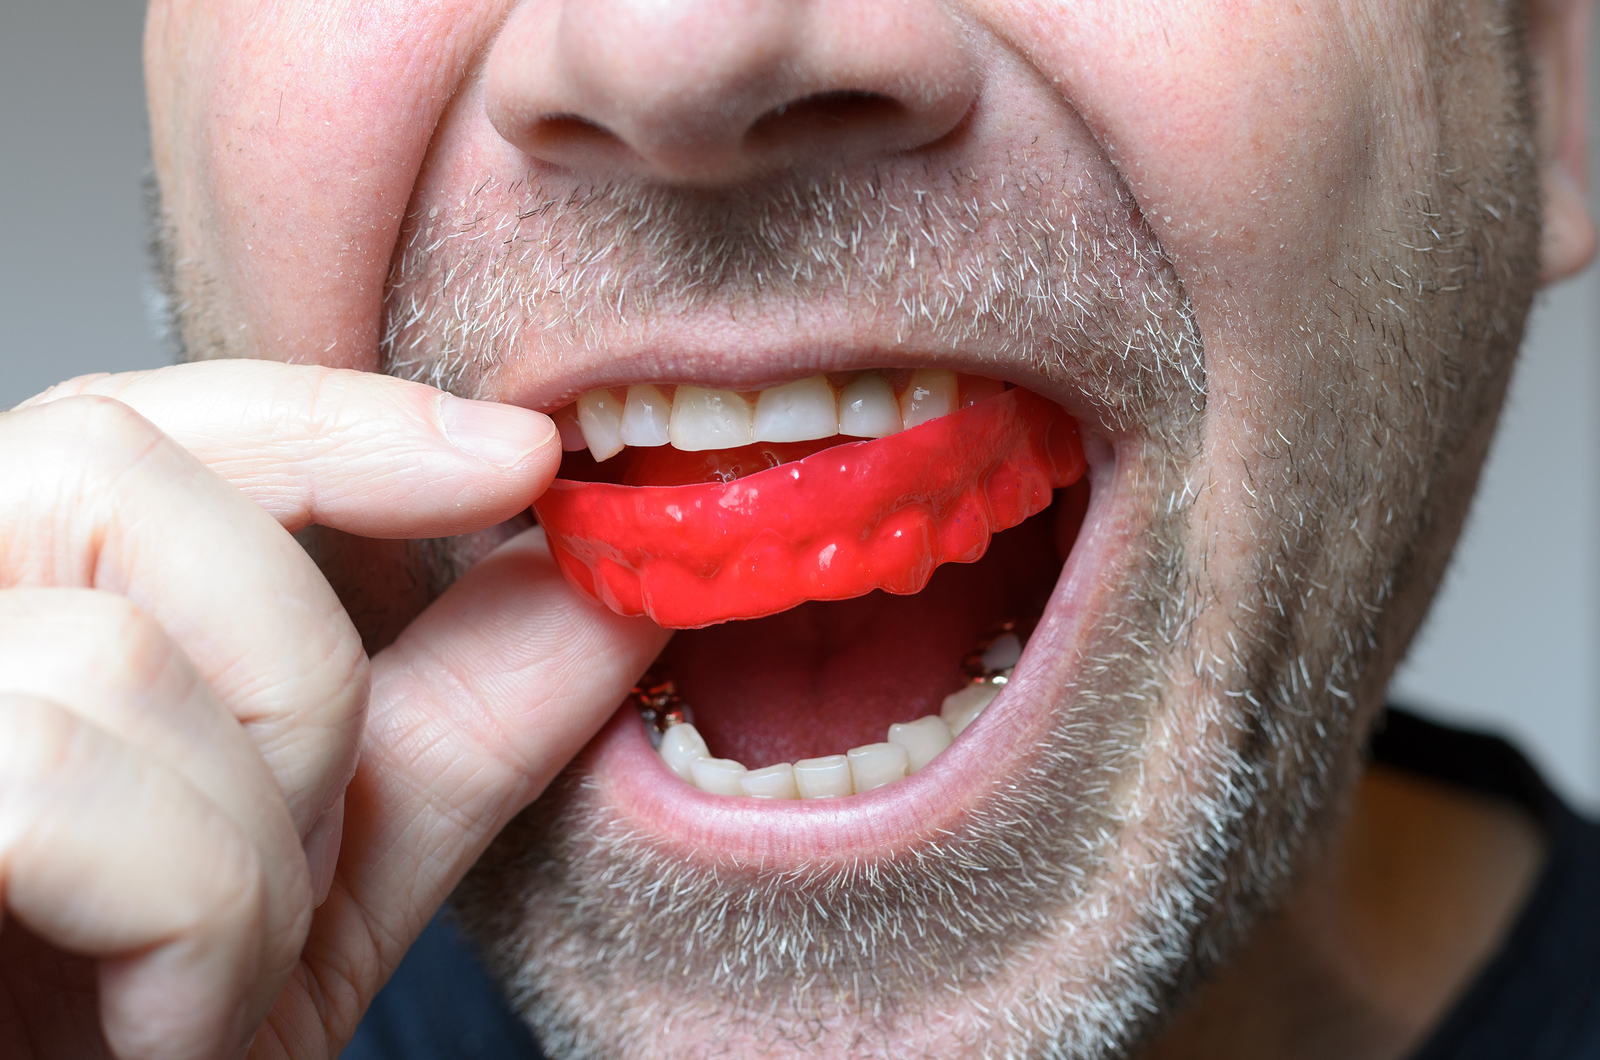 Man placing a red bite plate in his mouth to protect his teeth at night from grinding caused by bruxism close up view of his hand and the appliance